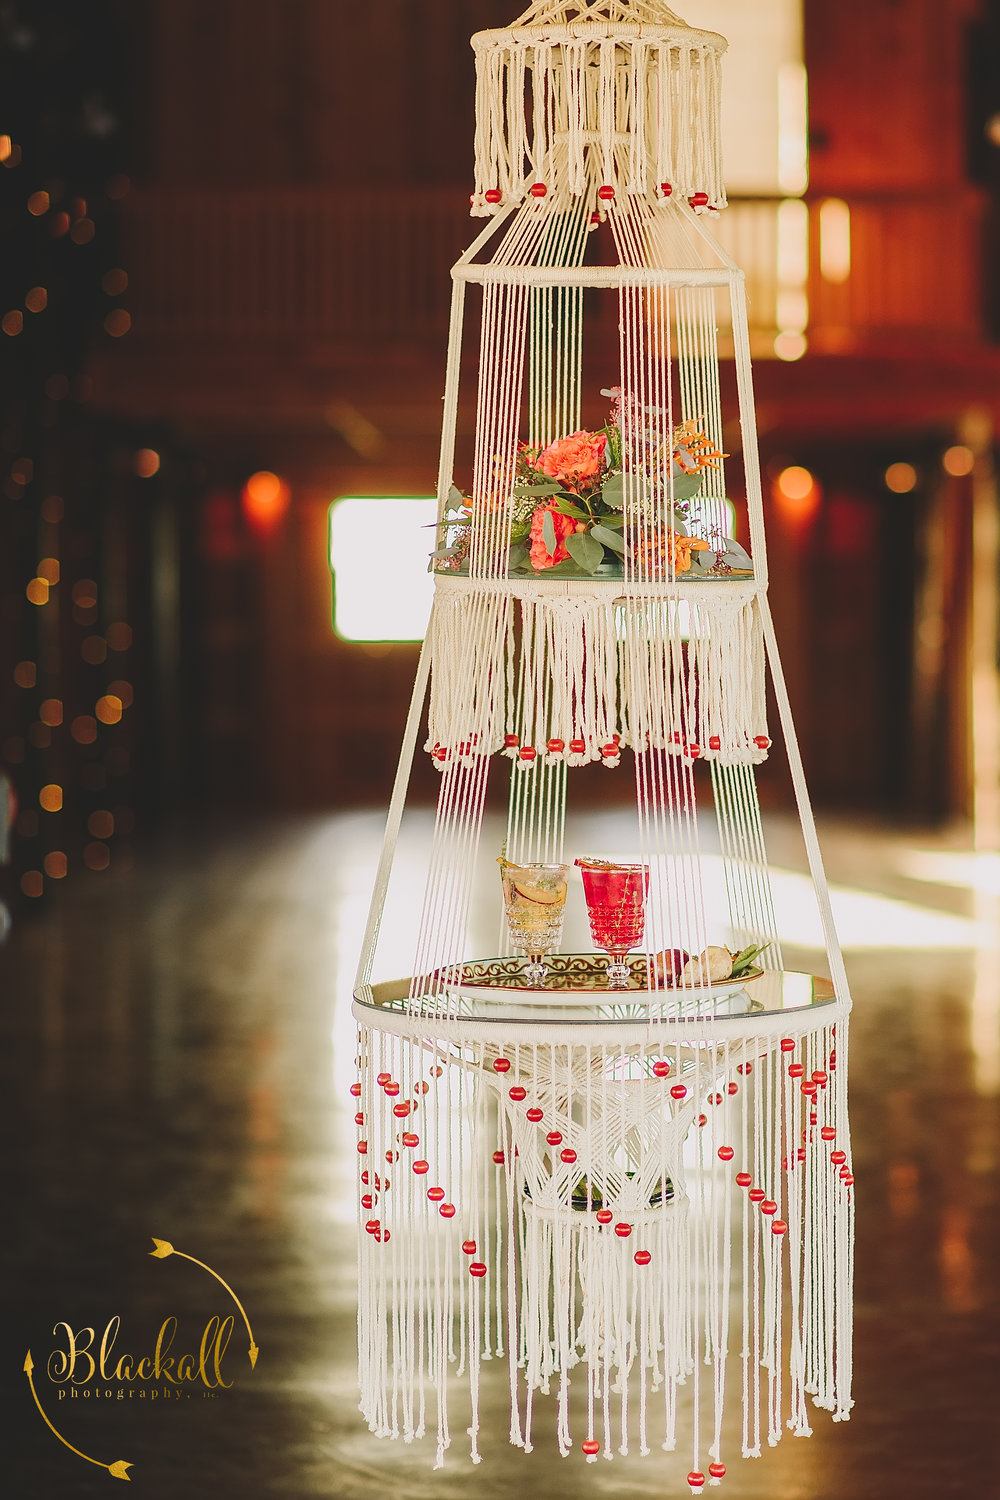 Cheers! What a original way to deliver drinks to the bride + groom! I love this Macrame Hanging Table!!